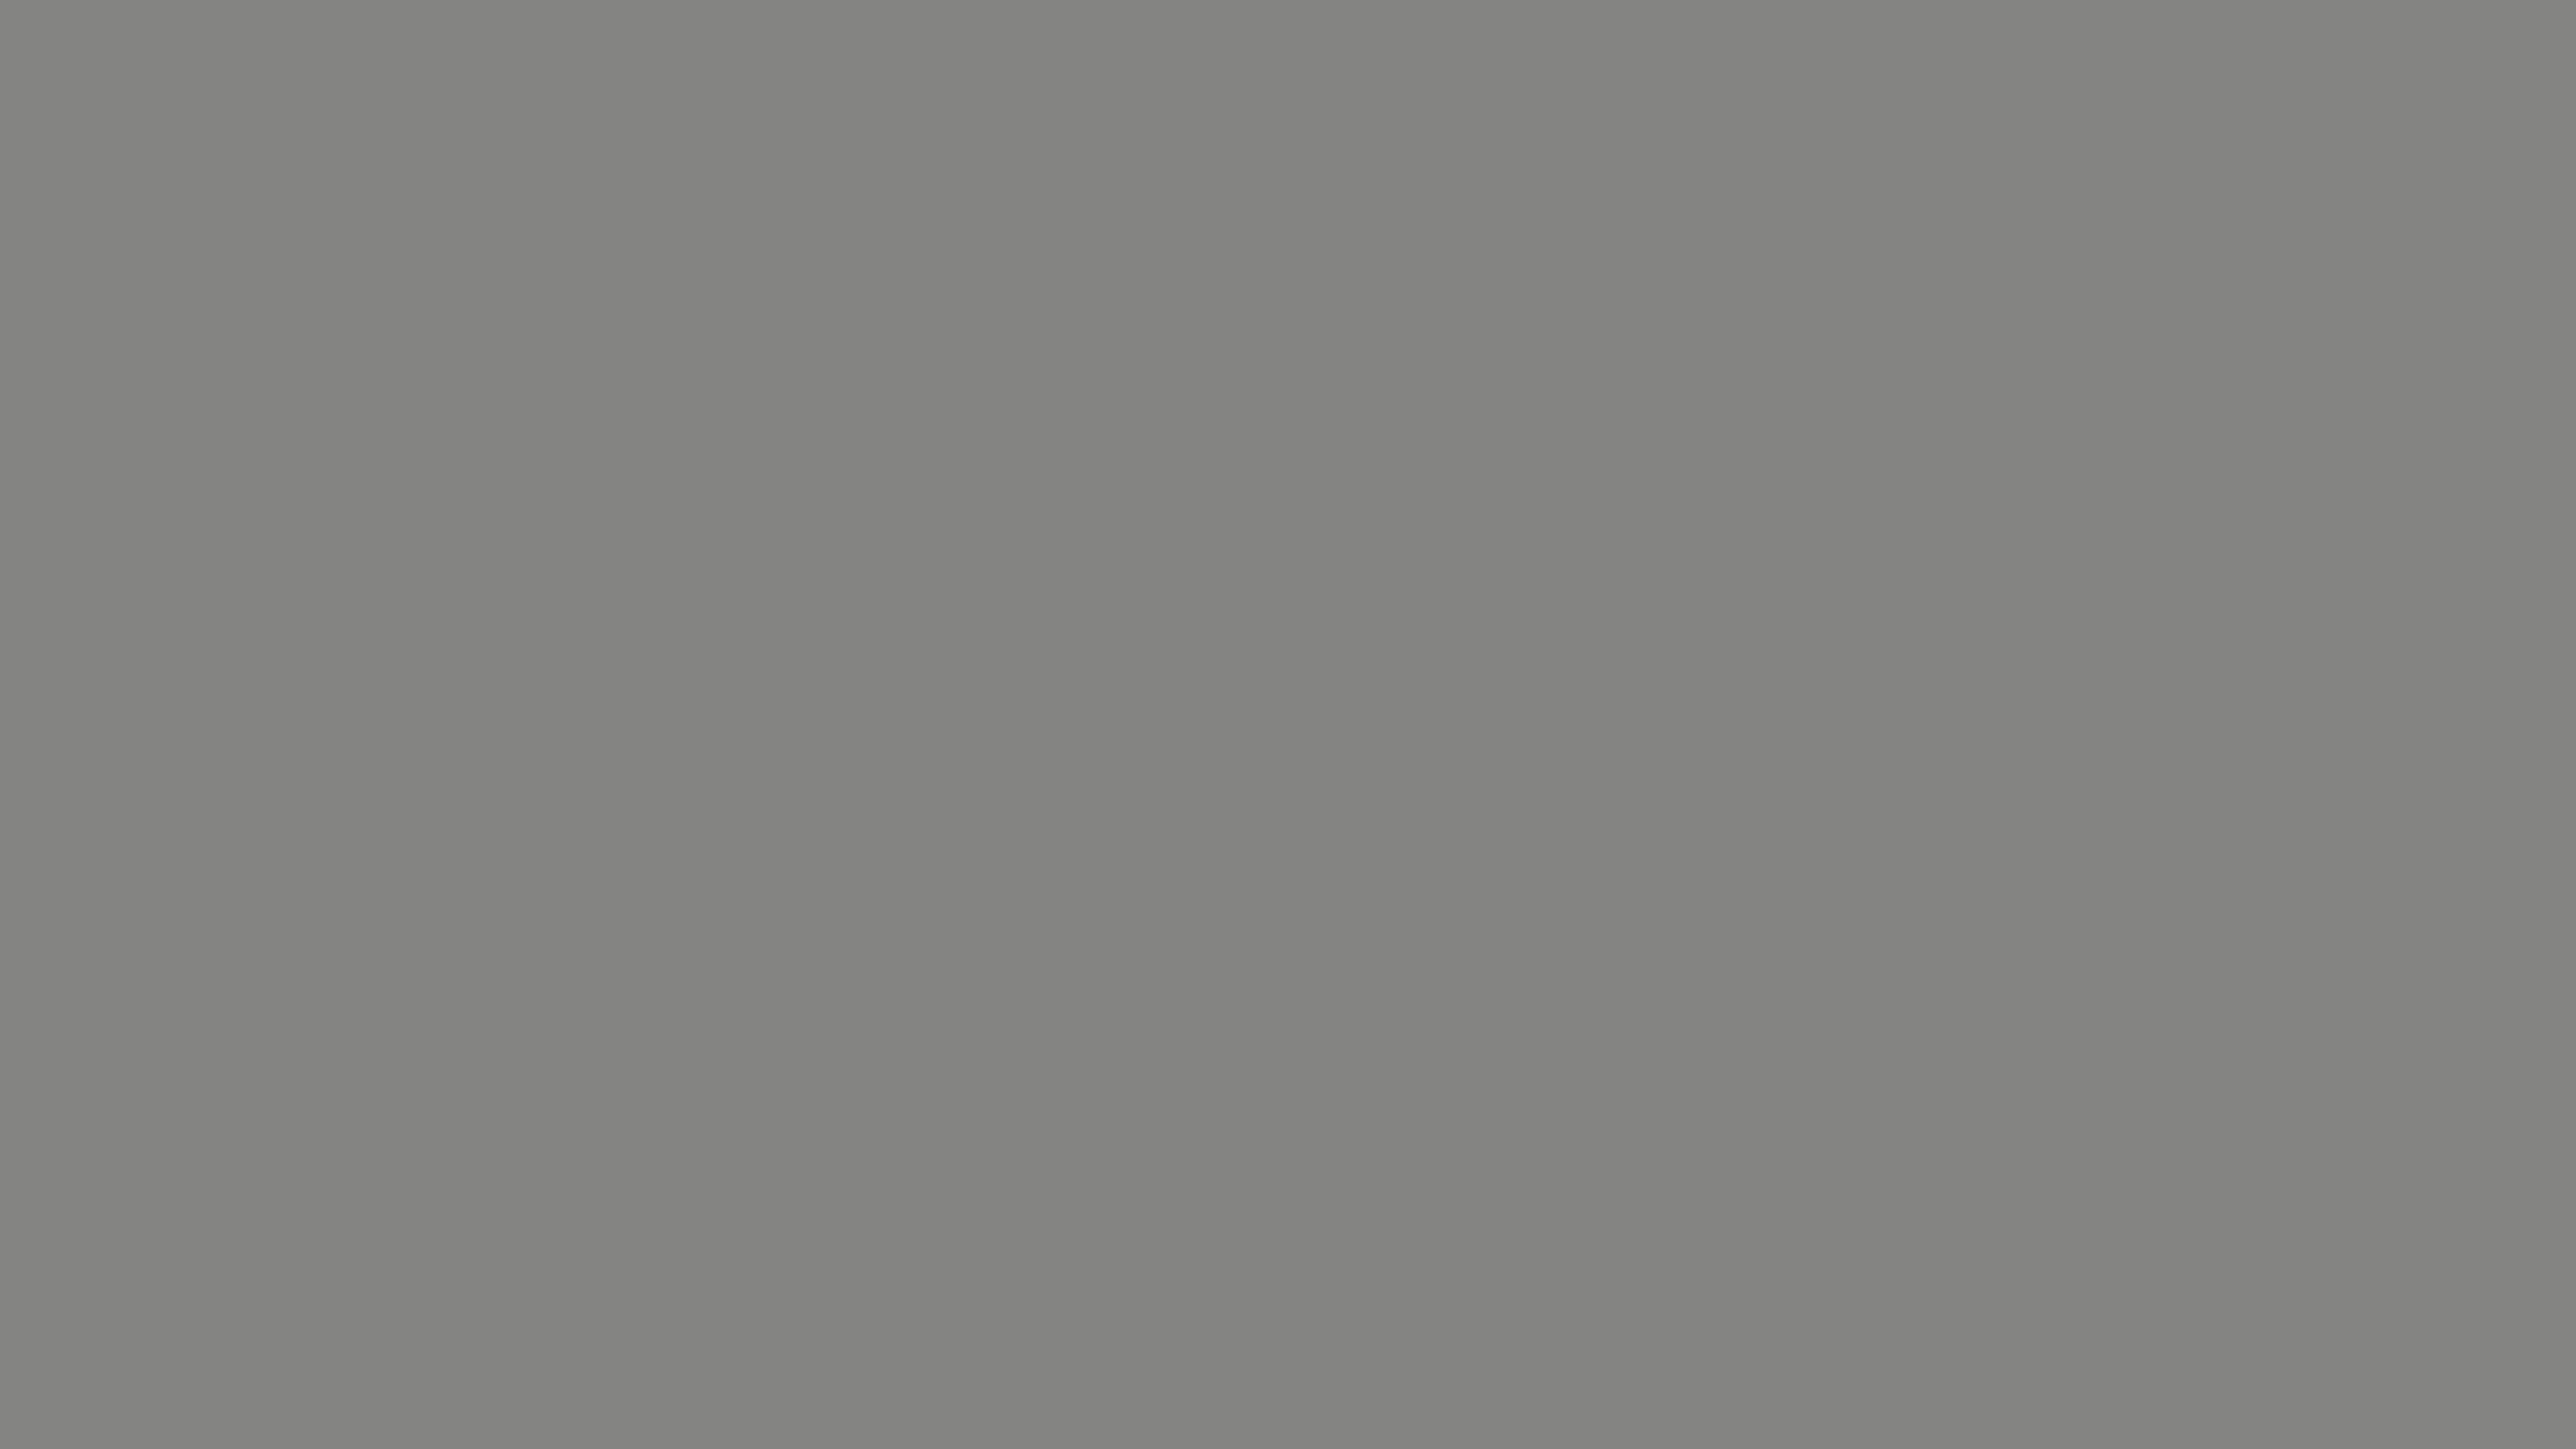 Battleship grey solid color background wallpaper 5120x2880 - Solid light gray wallpaper ...